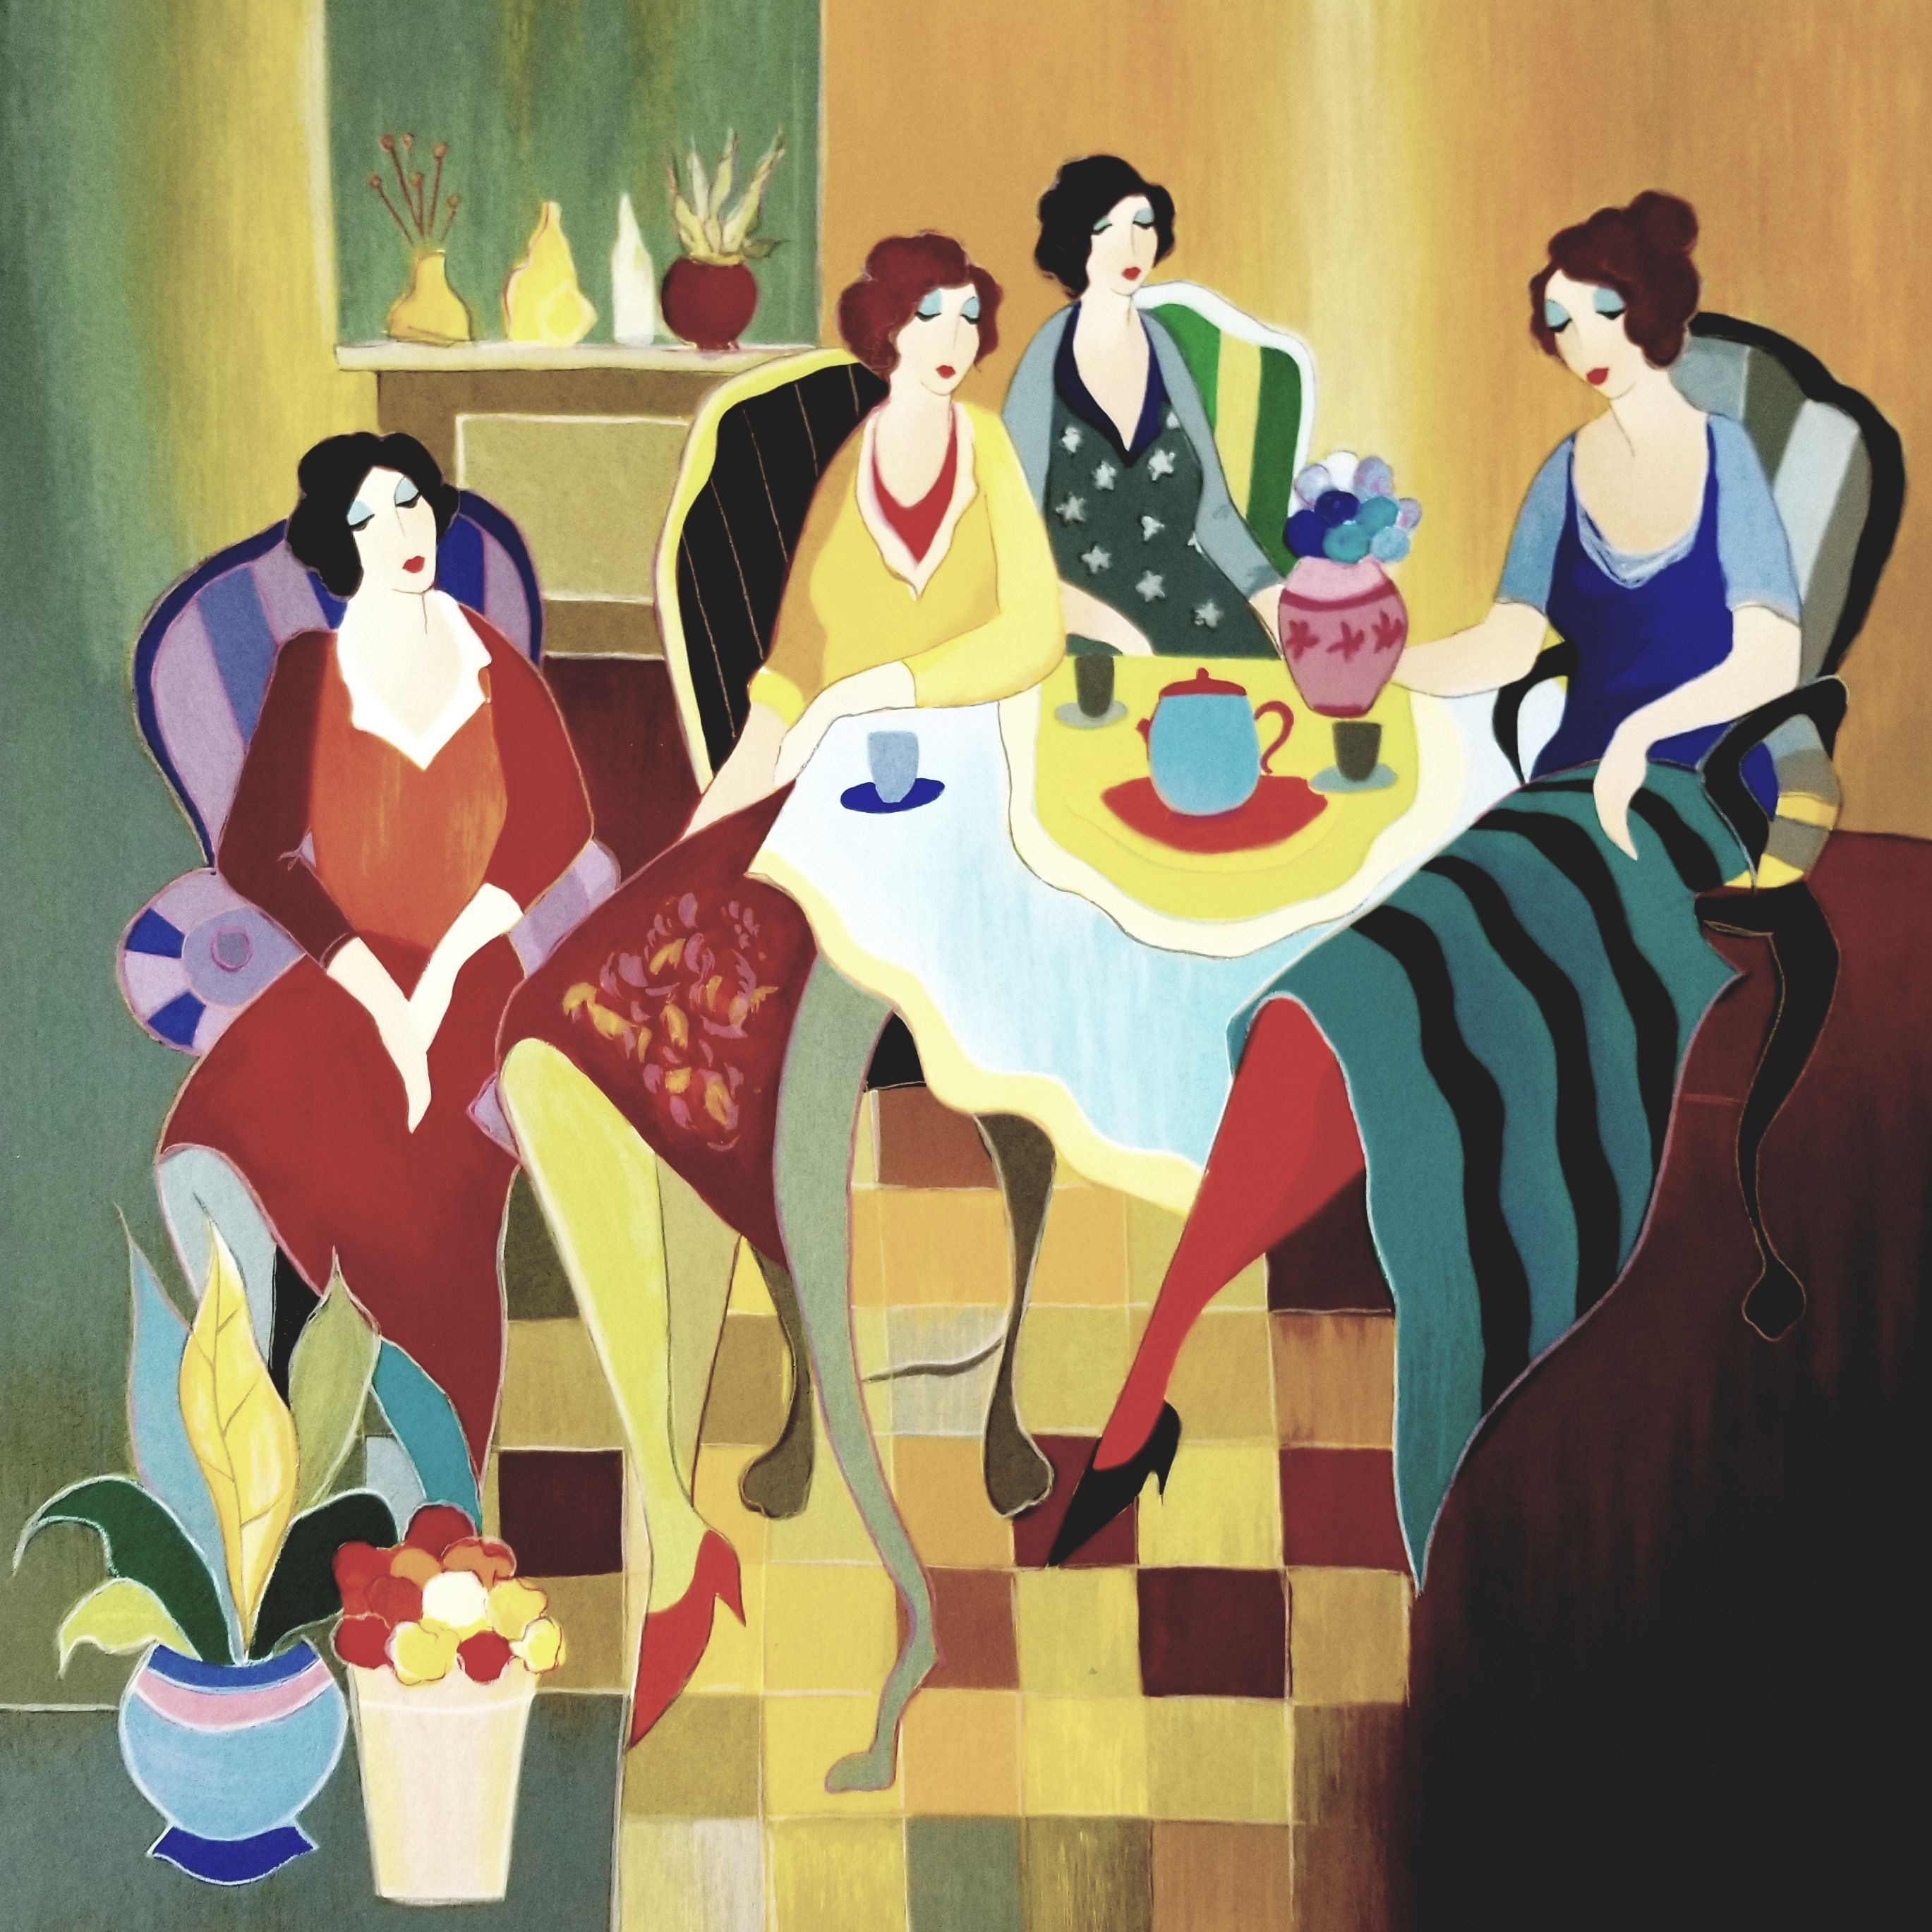 Girls Club artwork by Itzchak Tarkay - art listed for sale on Artplode